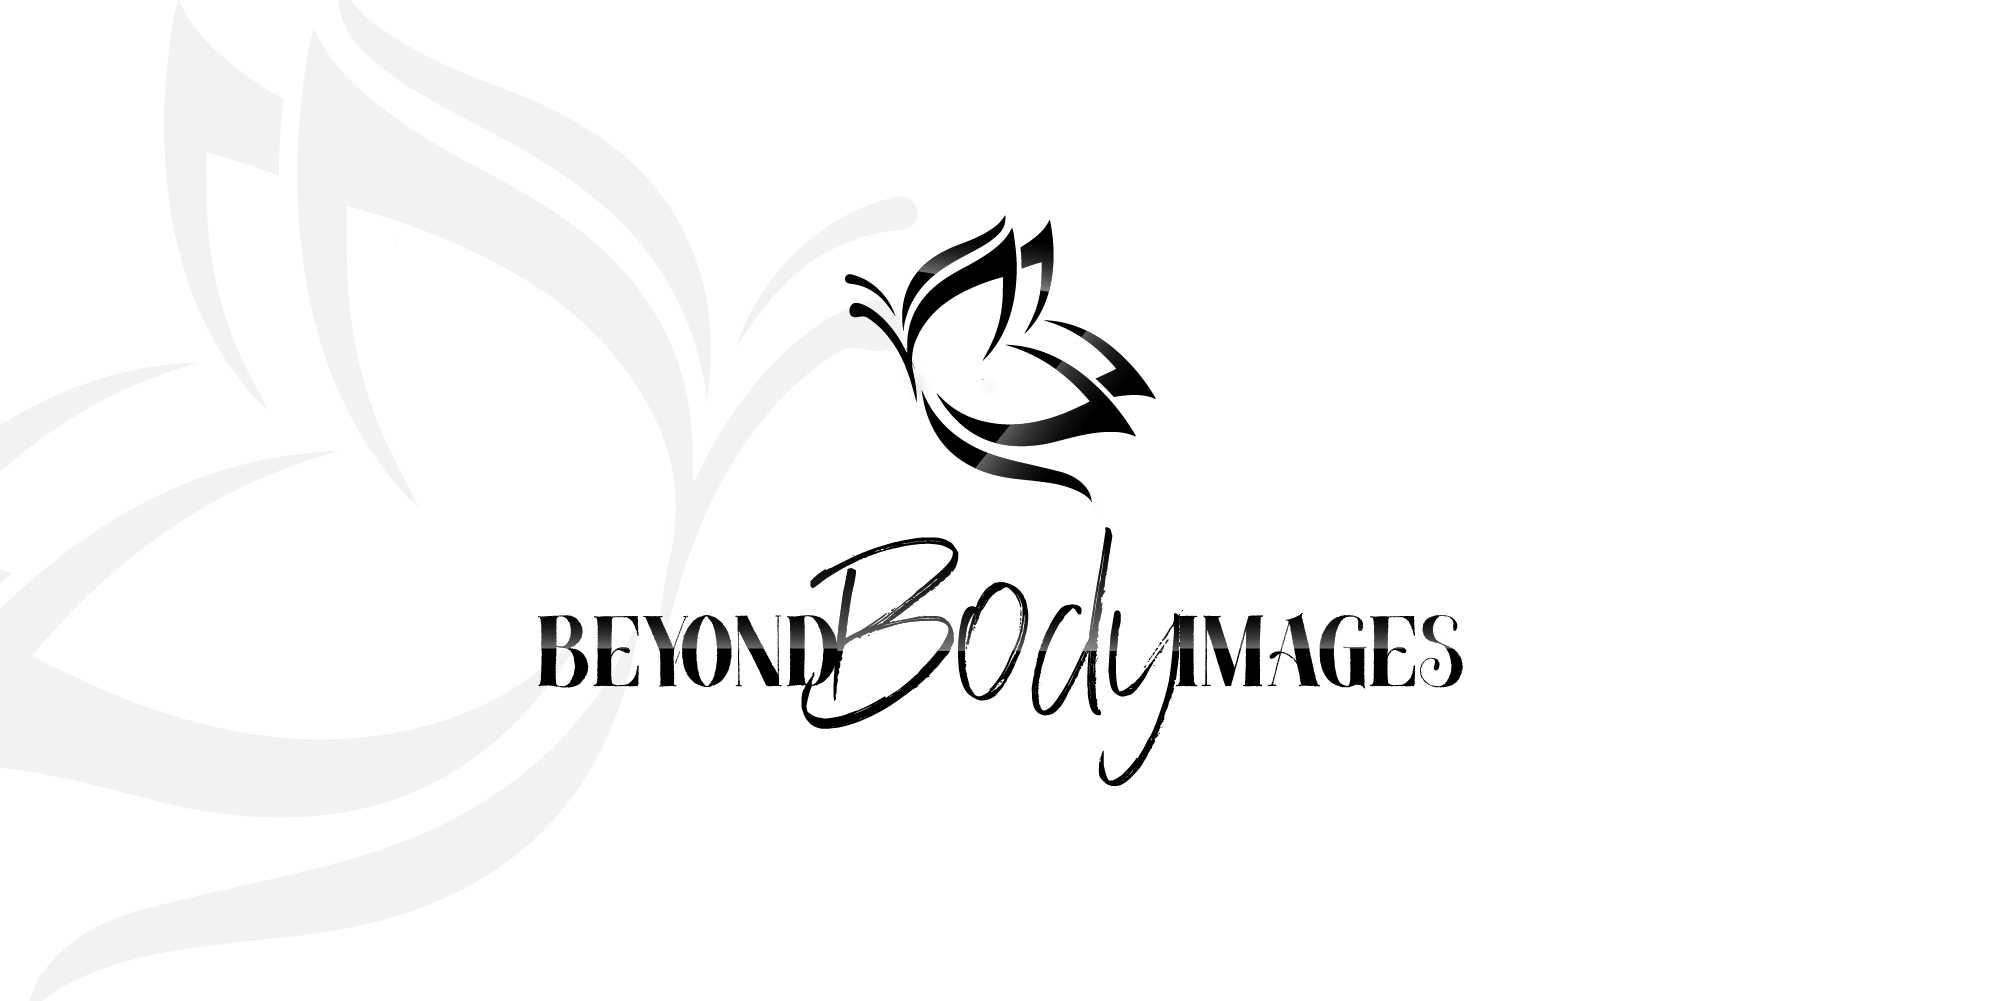 Beyond Body Images Launches Apparel Store Dedicated to Promoting Body Positivity